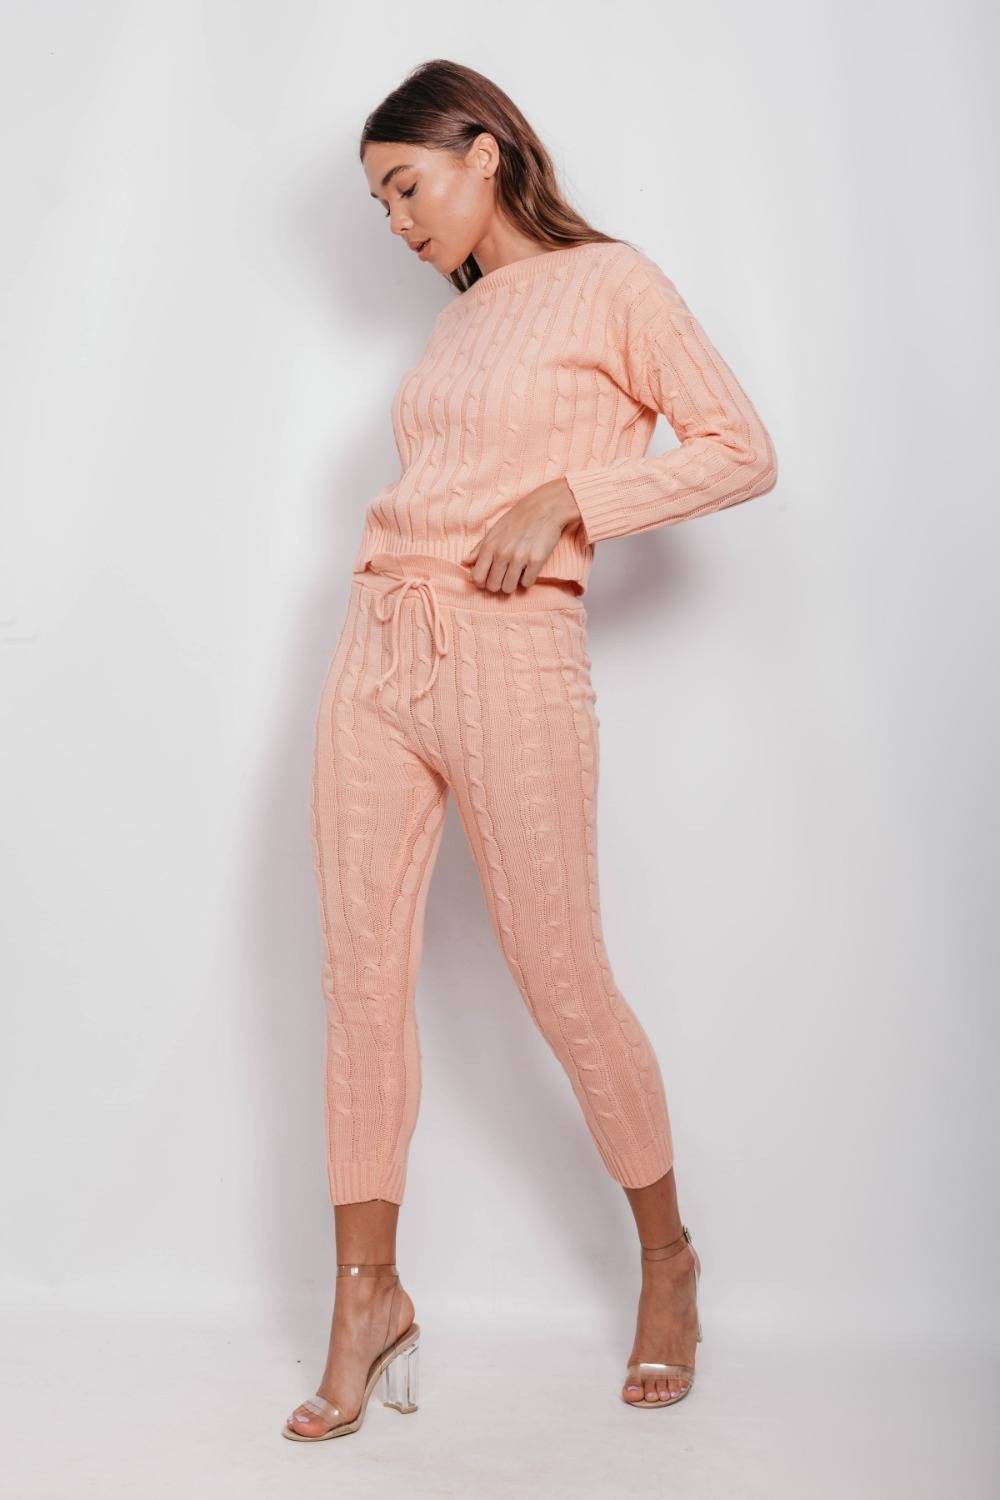 Coral Cable Knit Long Sleeve Cropped Top And Legging Lounge Set J5 Fashion